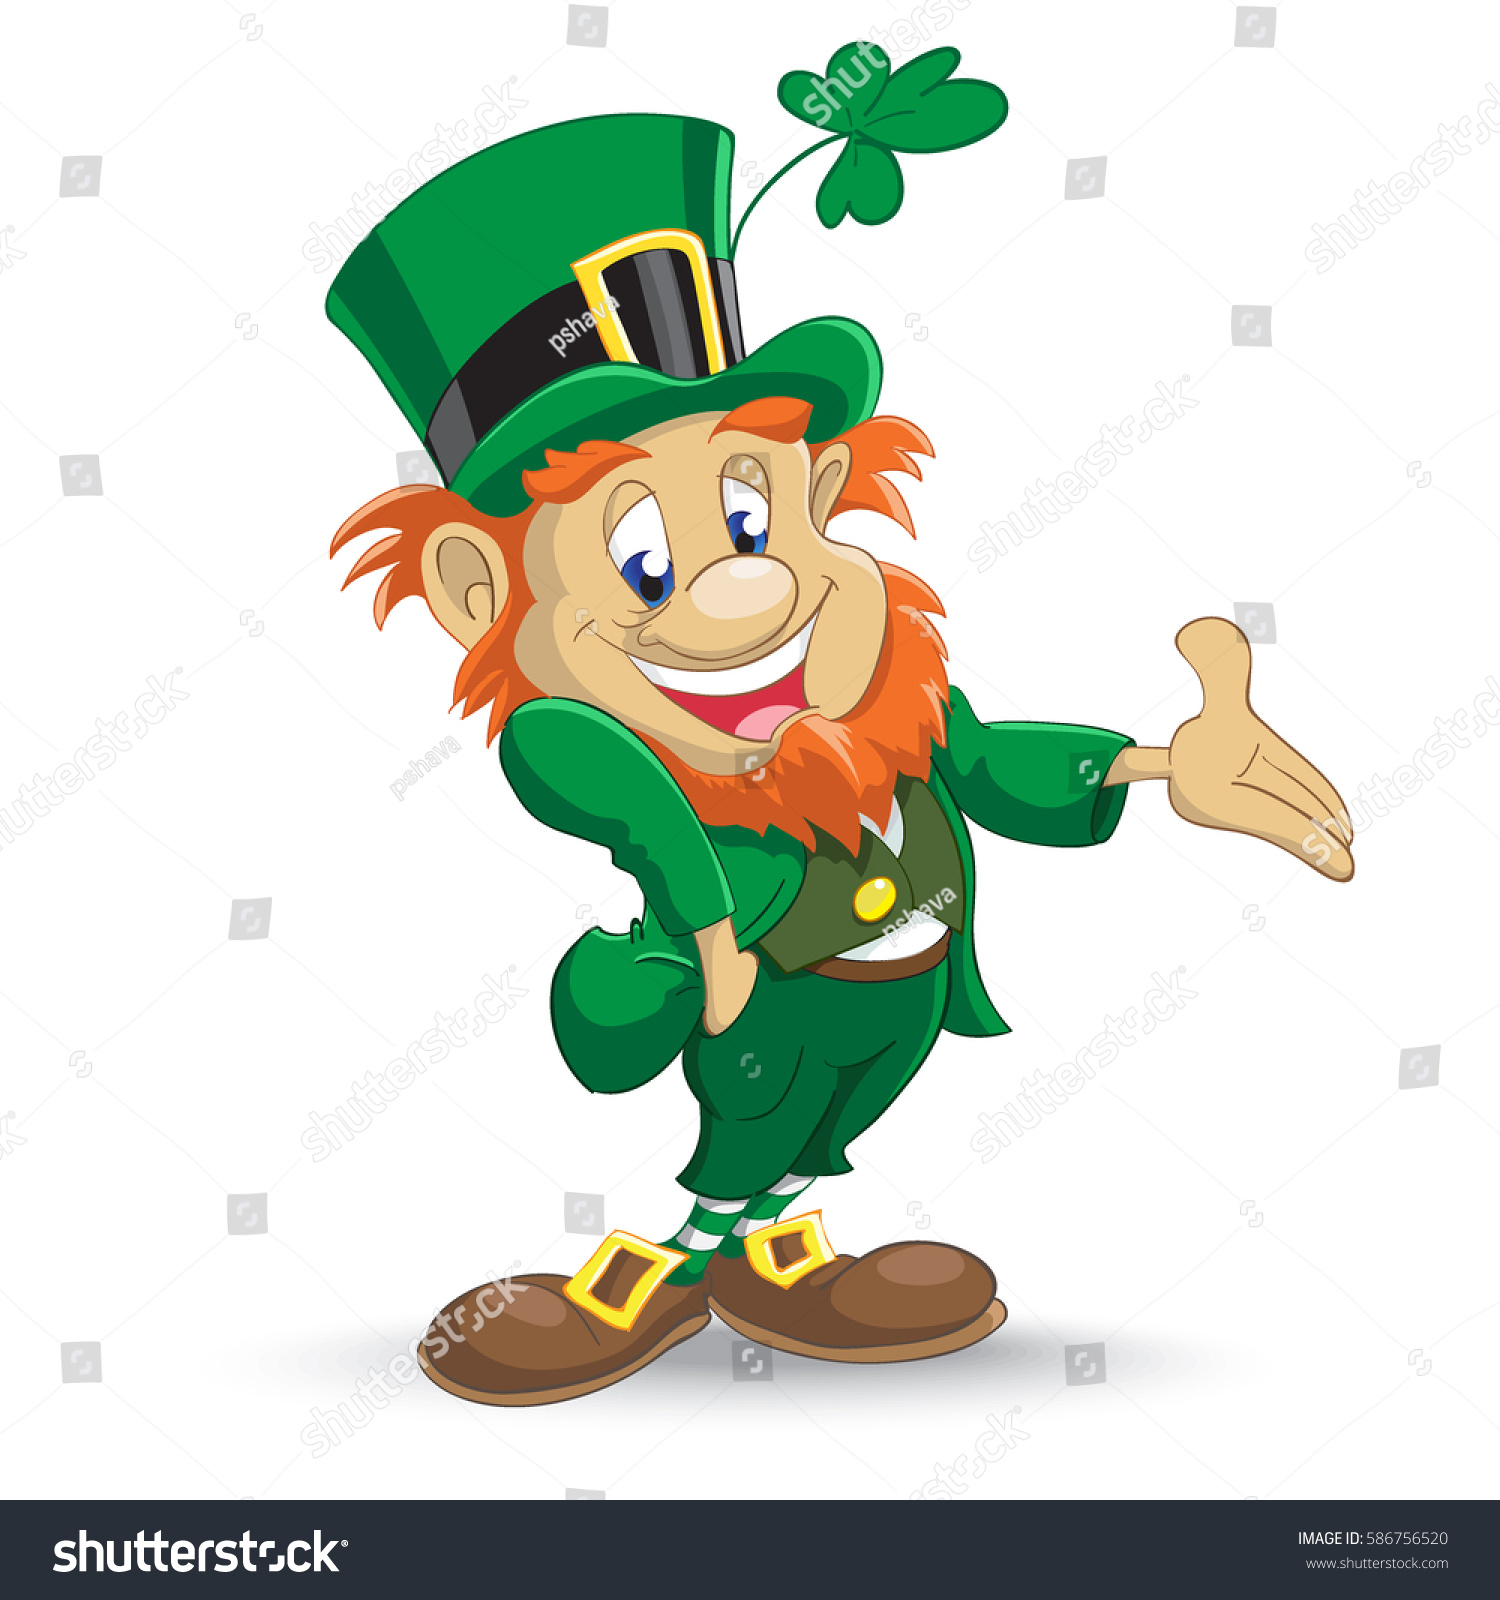 6842393860 also 4362188286 likewise 102456960245083393 in addition Vidmark entertainment vhs covers as well Others. on leprechaun